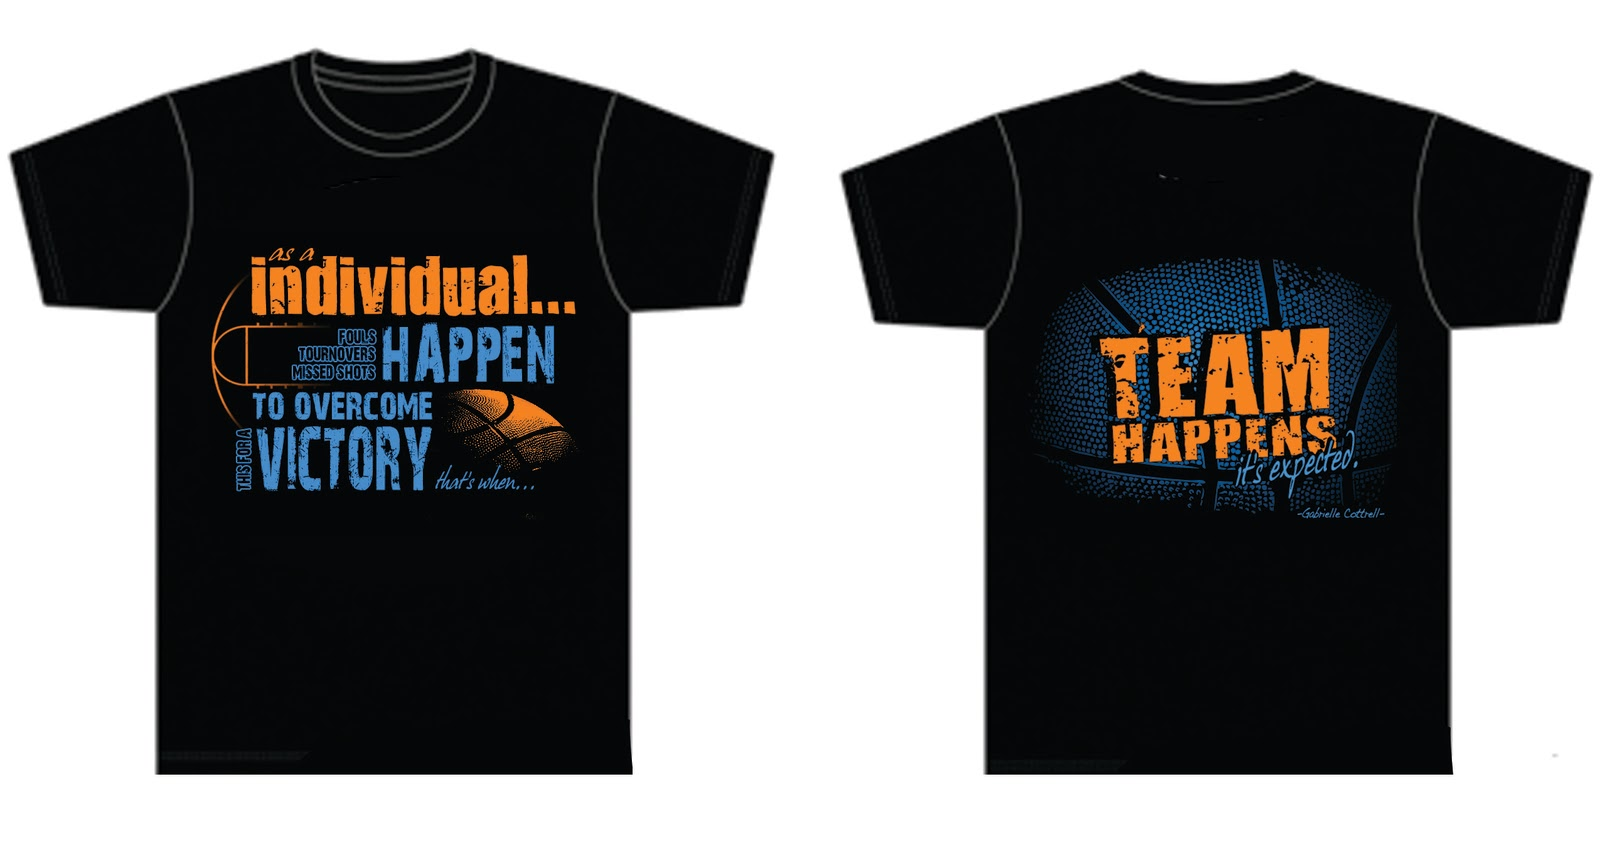 high school basketball t shirt as an indvidual fouls turnovers missed - School T Shirt Design Ideas